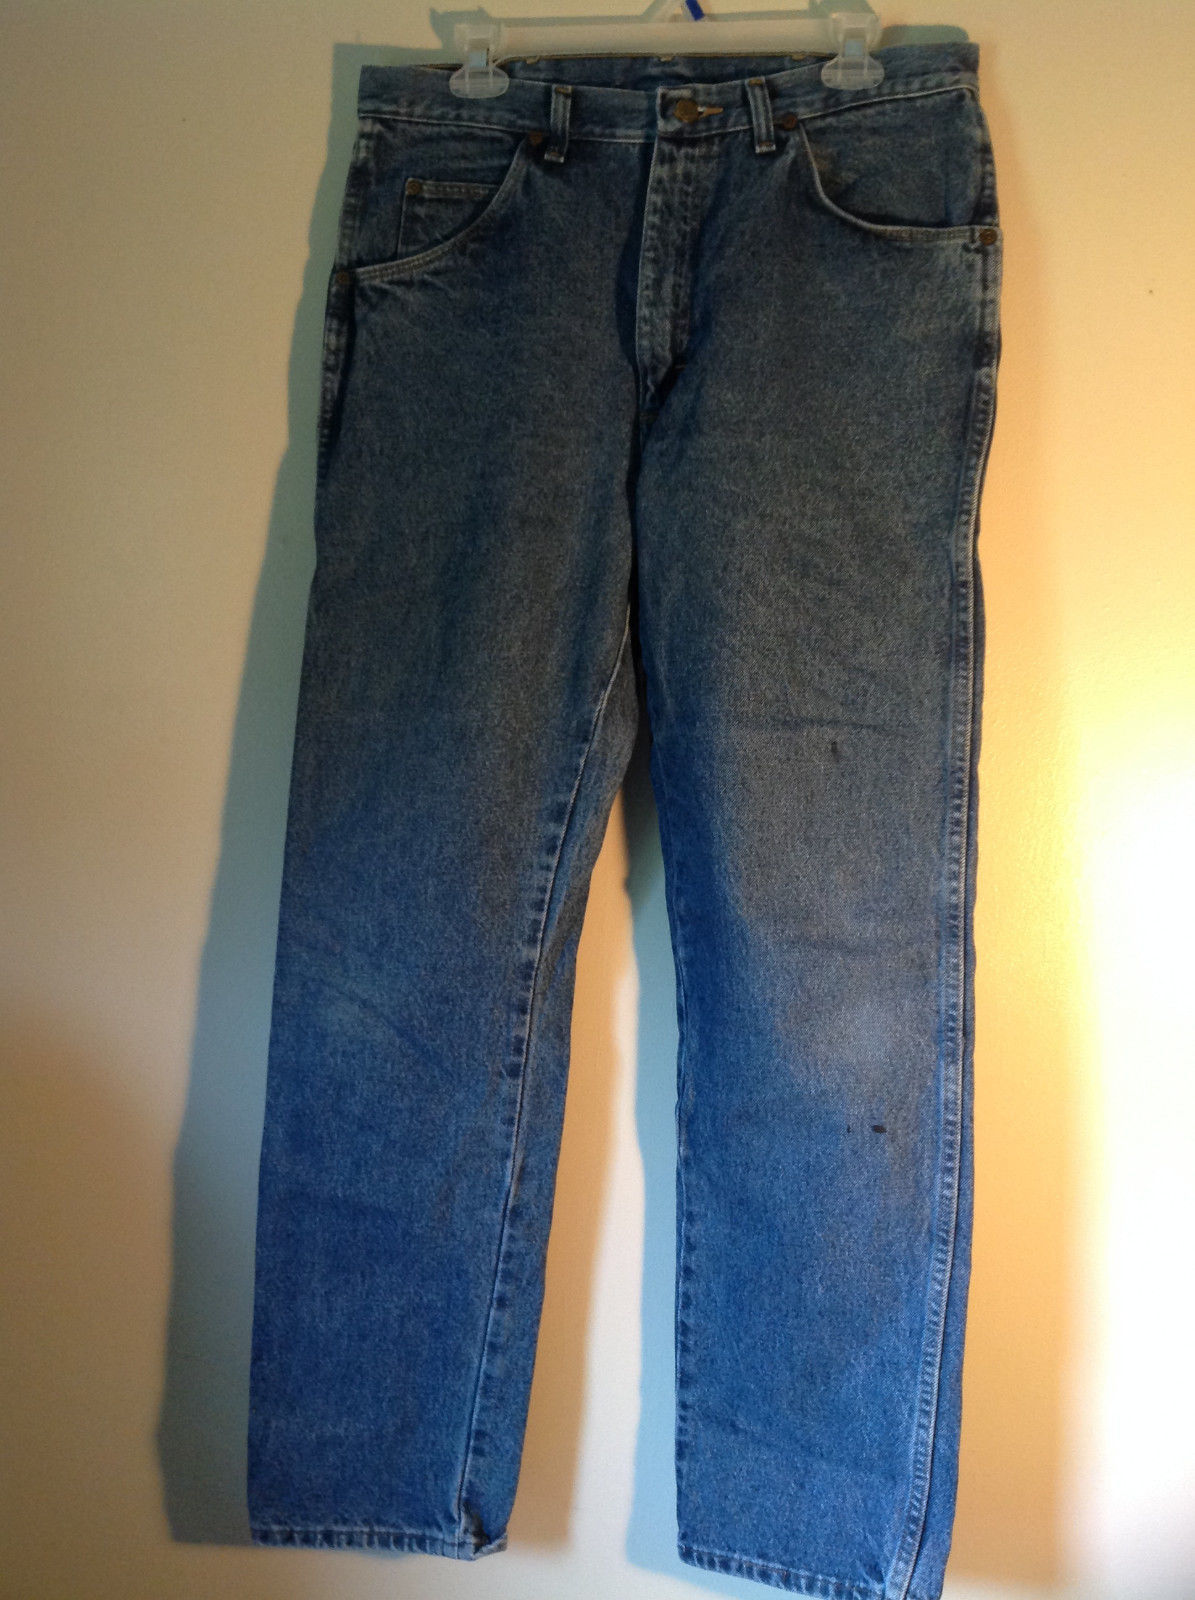 Wrangler Premium Quality Blue Jeans Size 34 by 32 Zipper Button Closure